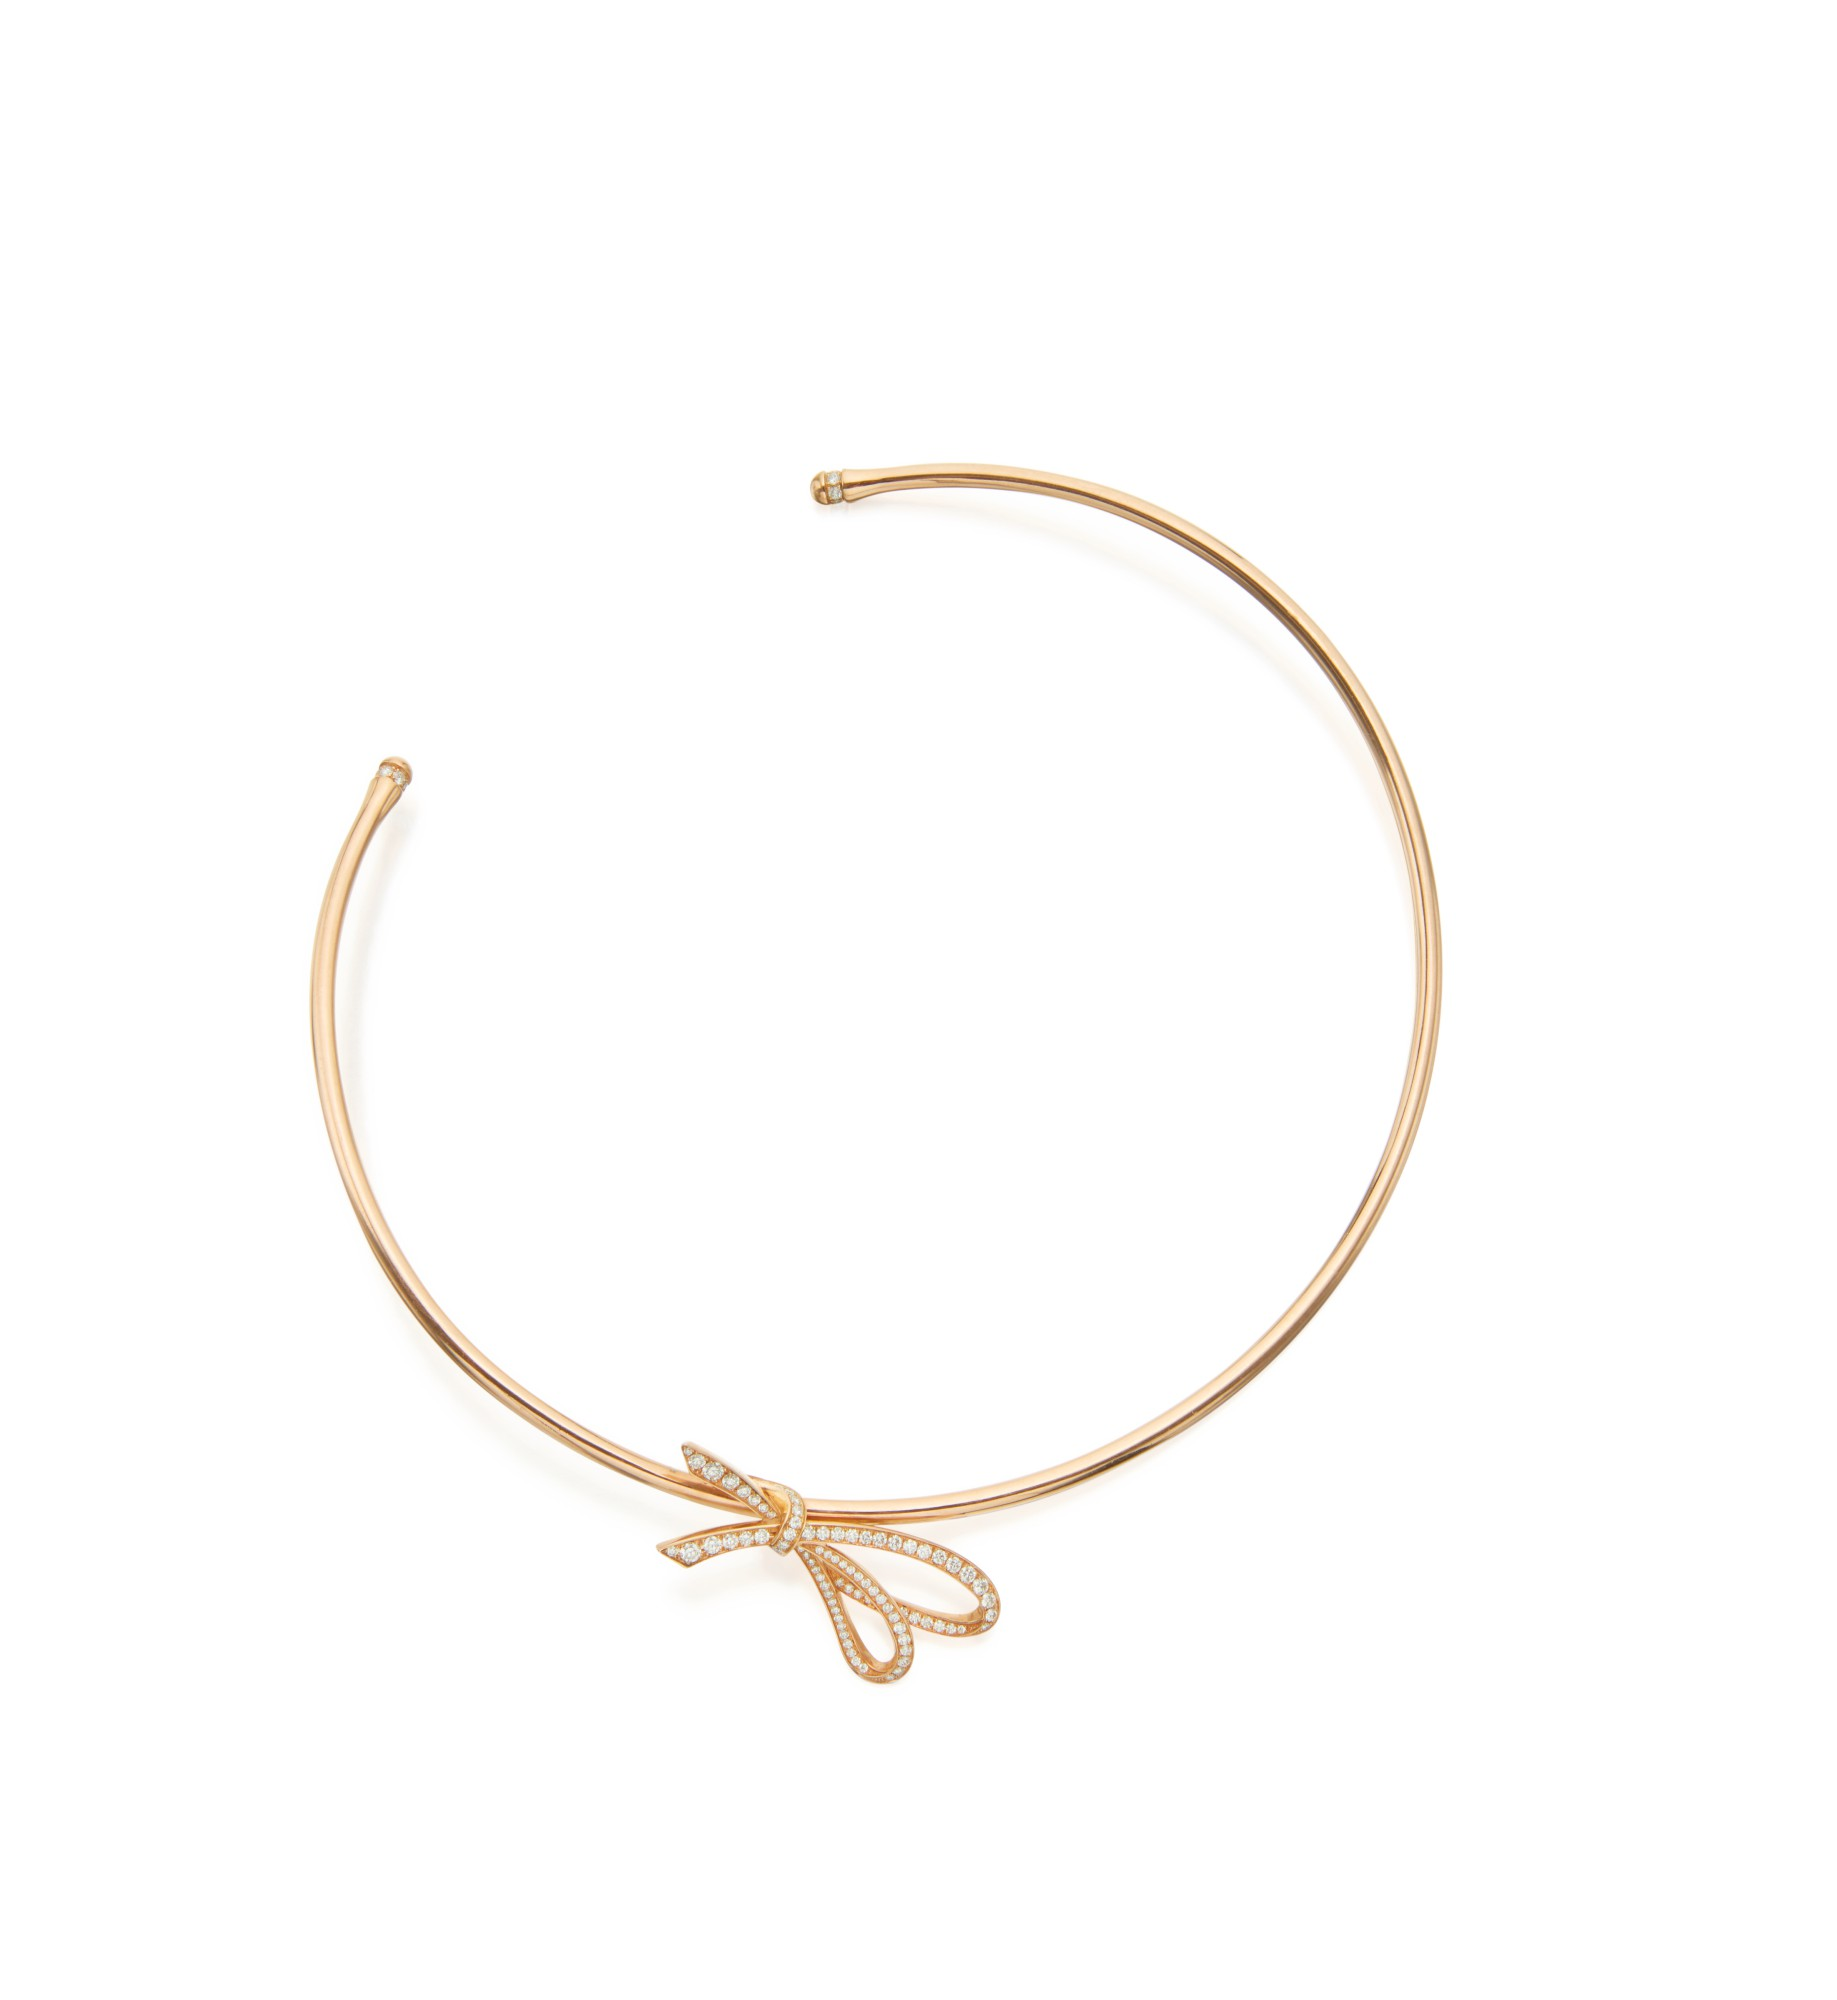 PINK GOLD AND DIAMOND 'TIFFANY BOW' COLLAR-NECKLACE, TIFFANY & CO.